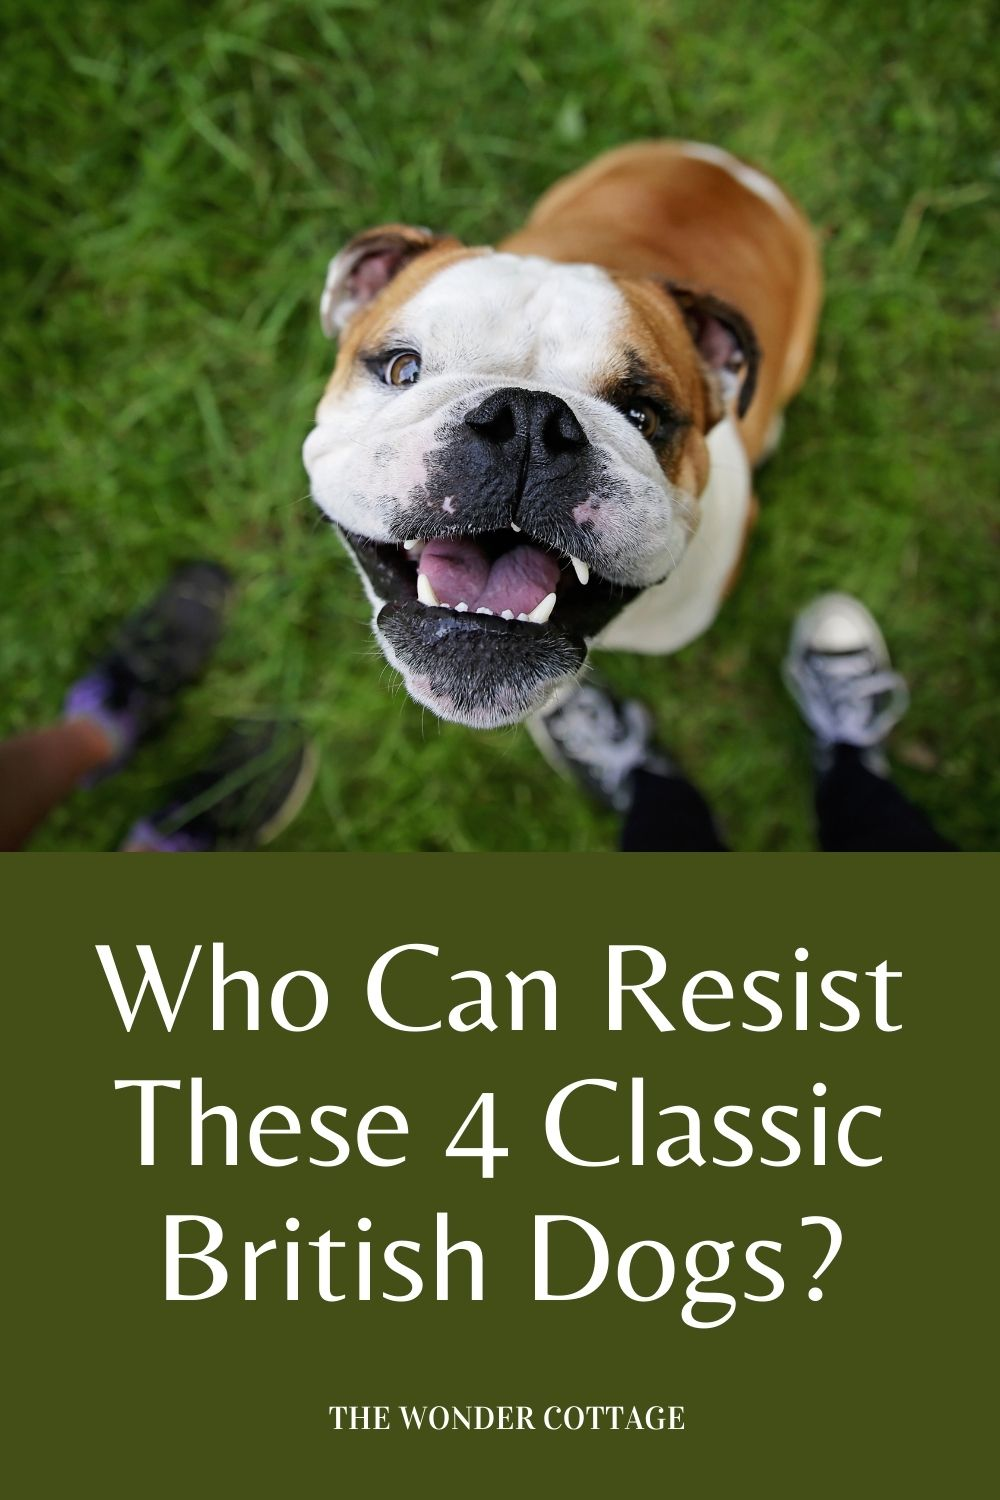 who can resist these 4 classic British dogs